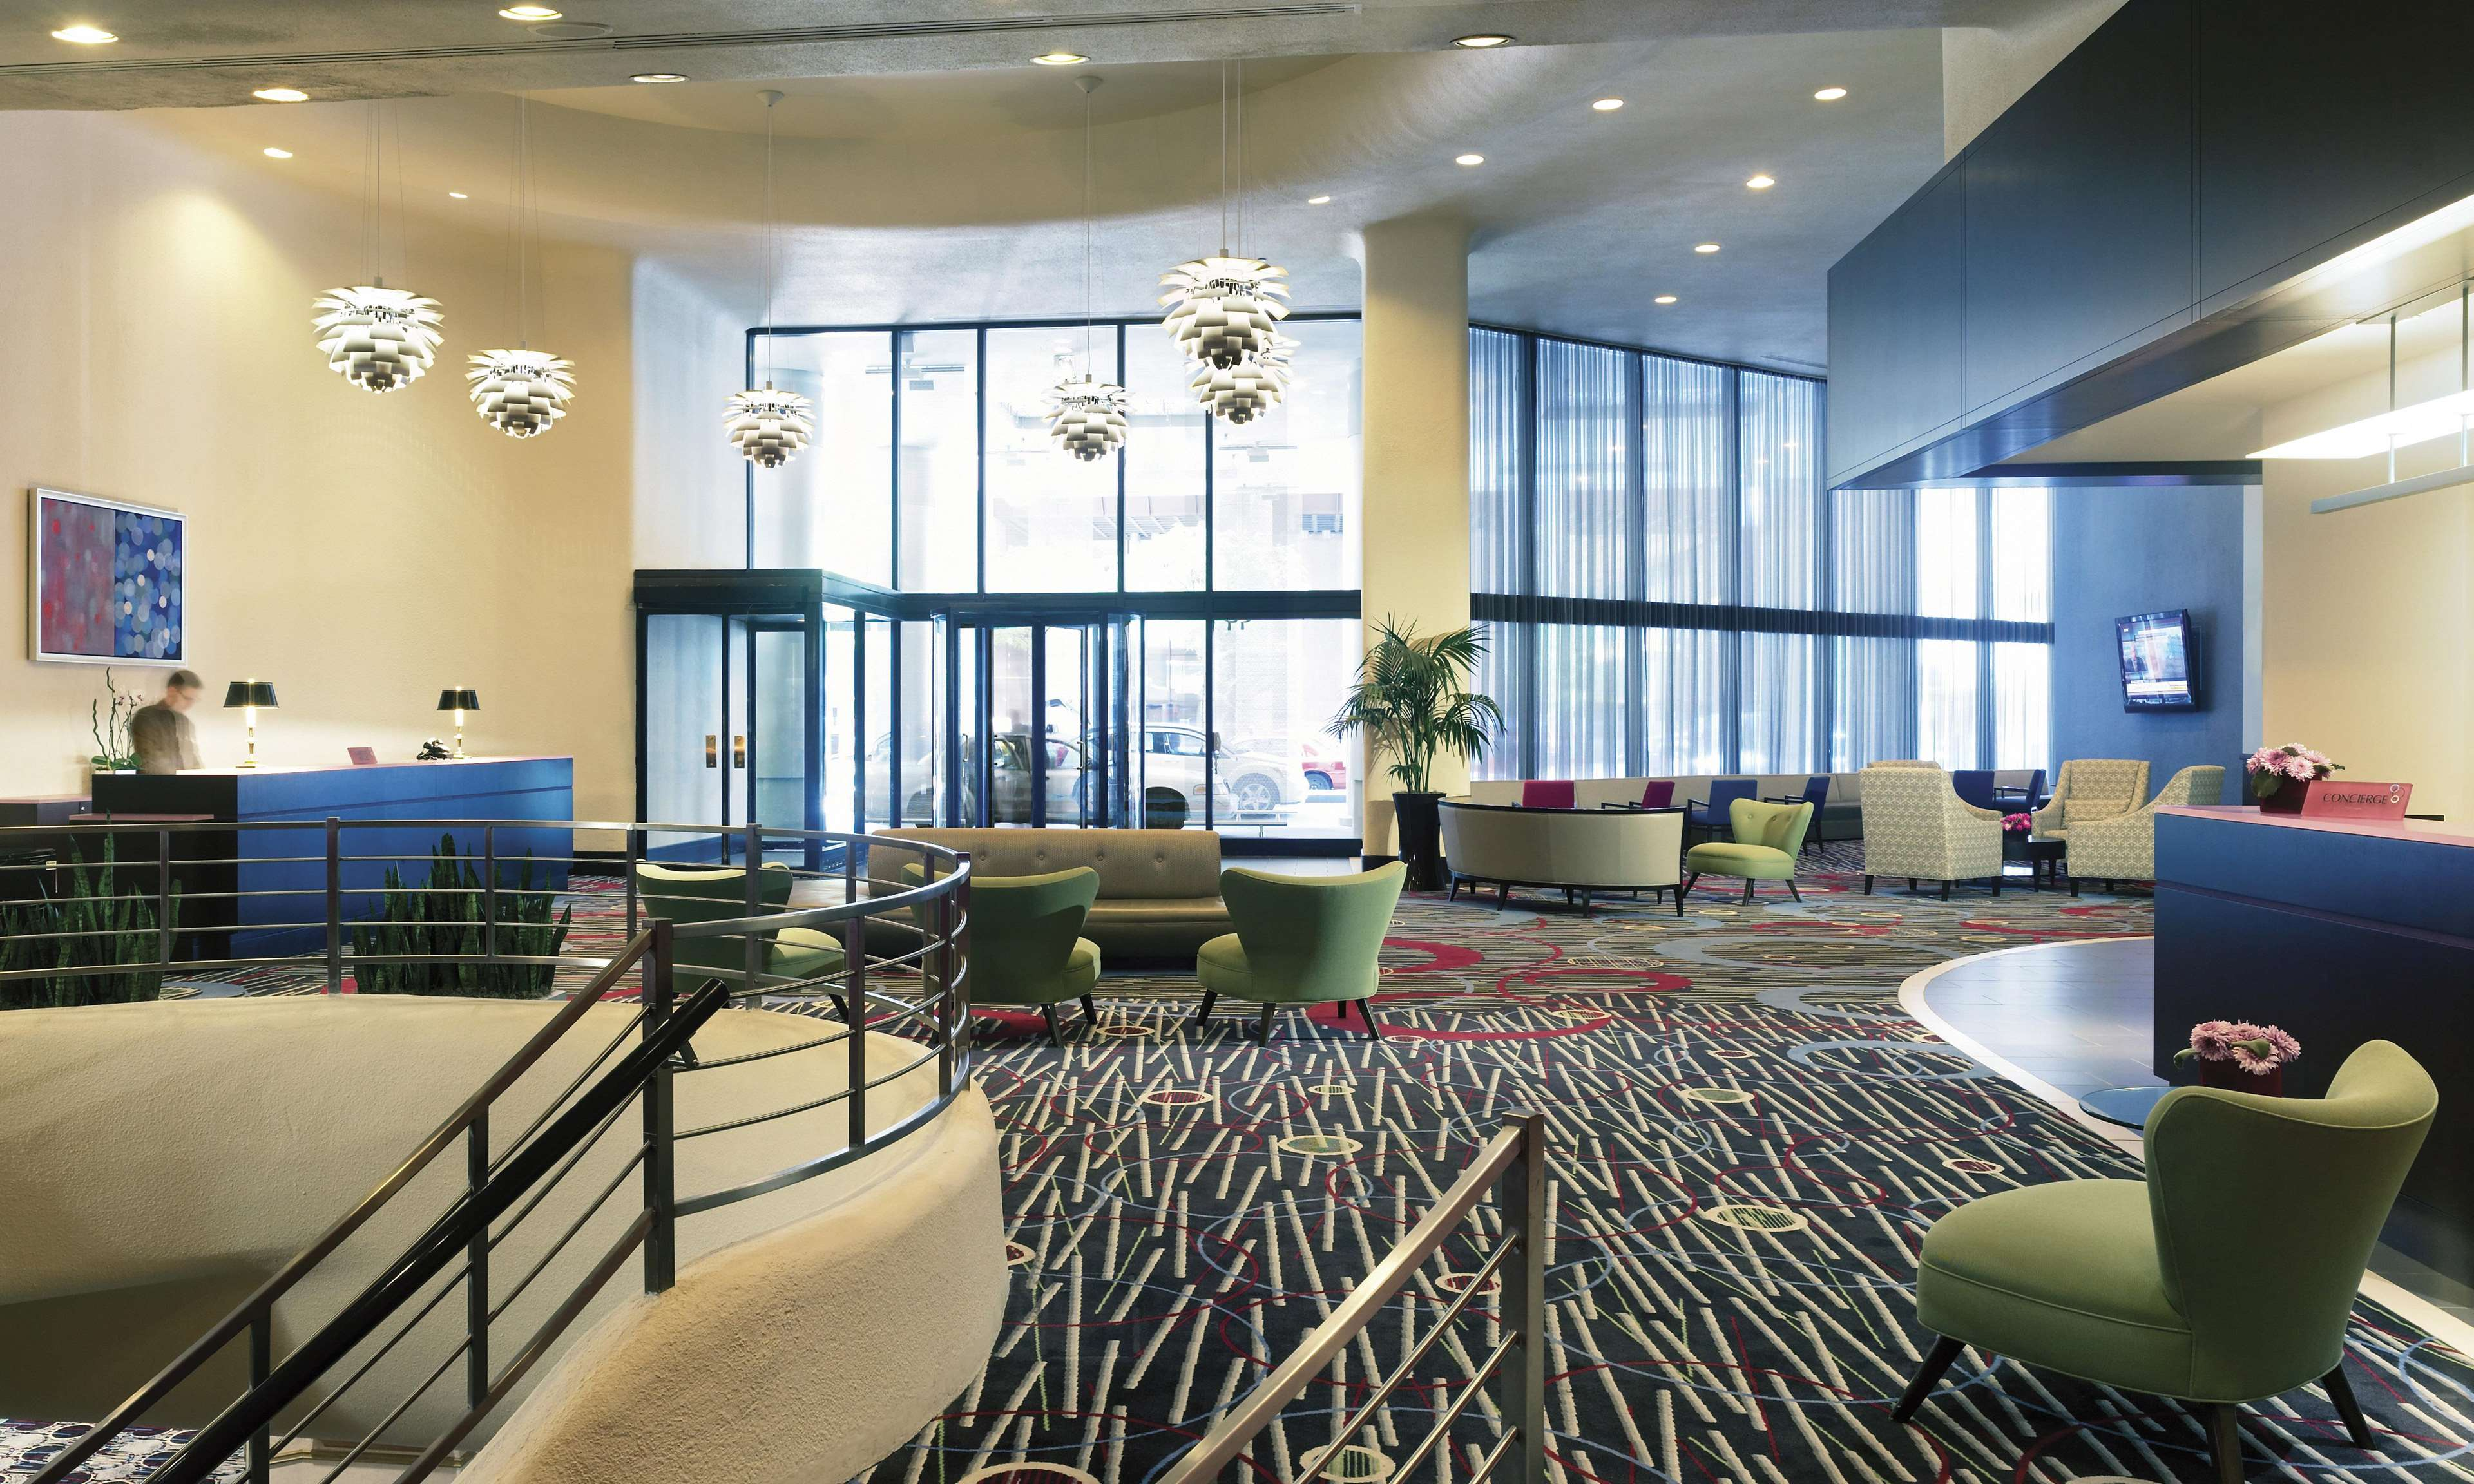 Hilton Grand Vacations Chicago Downtown Magnificent Mile image 4